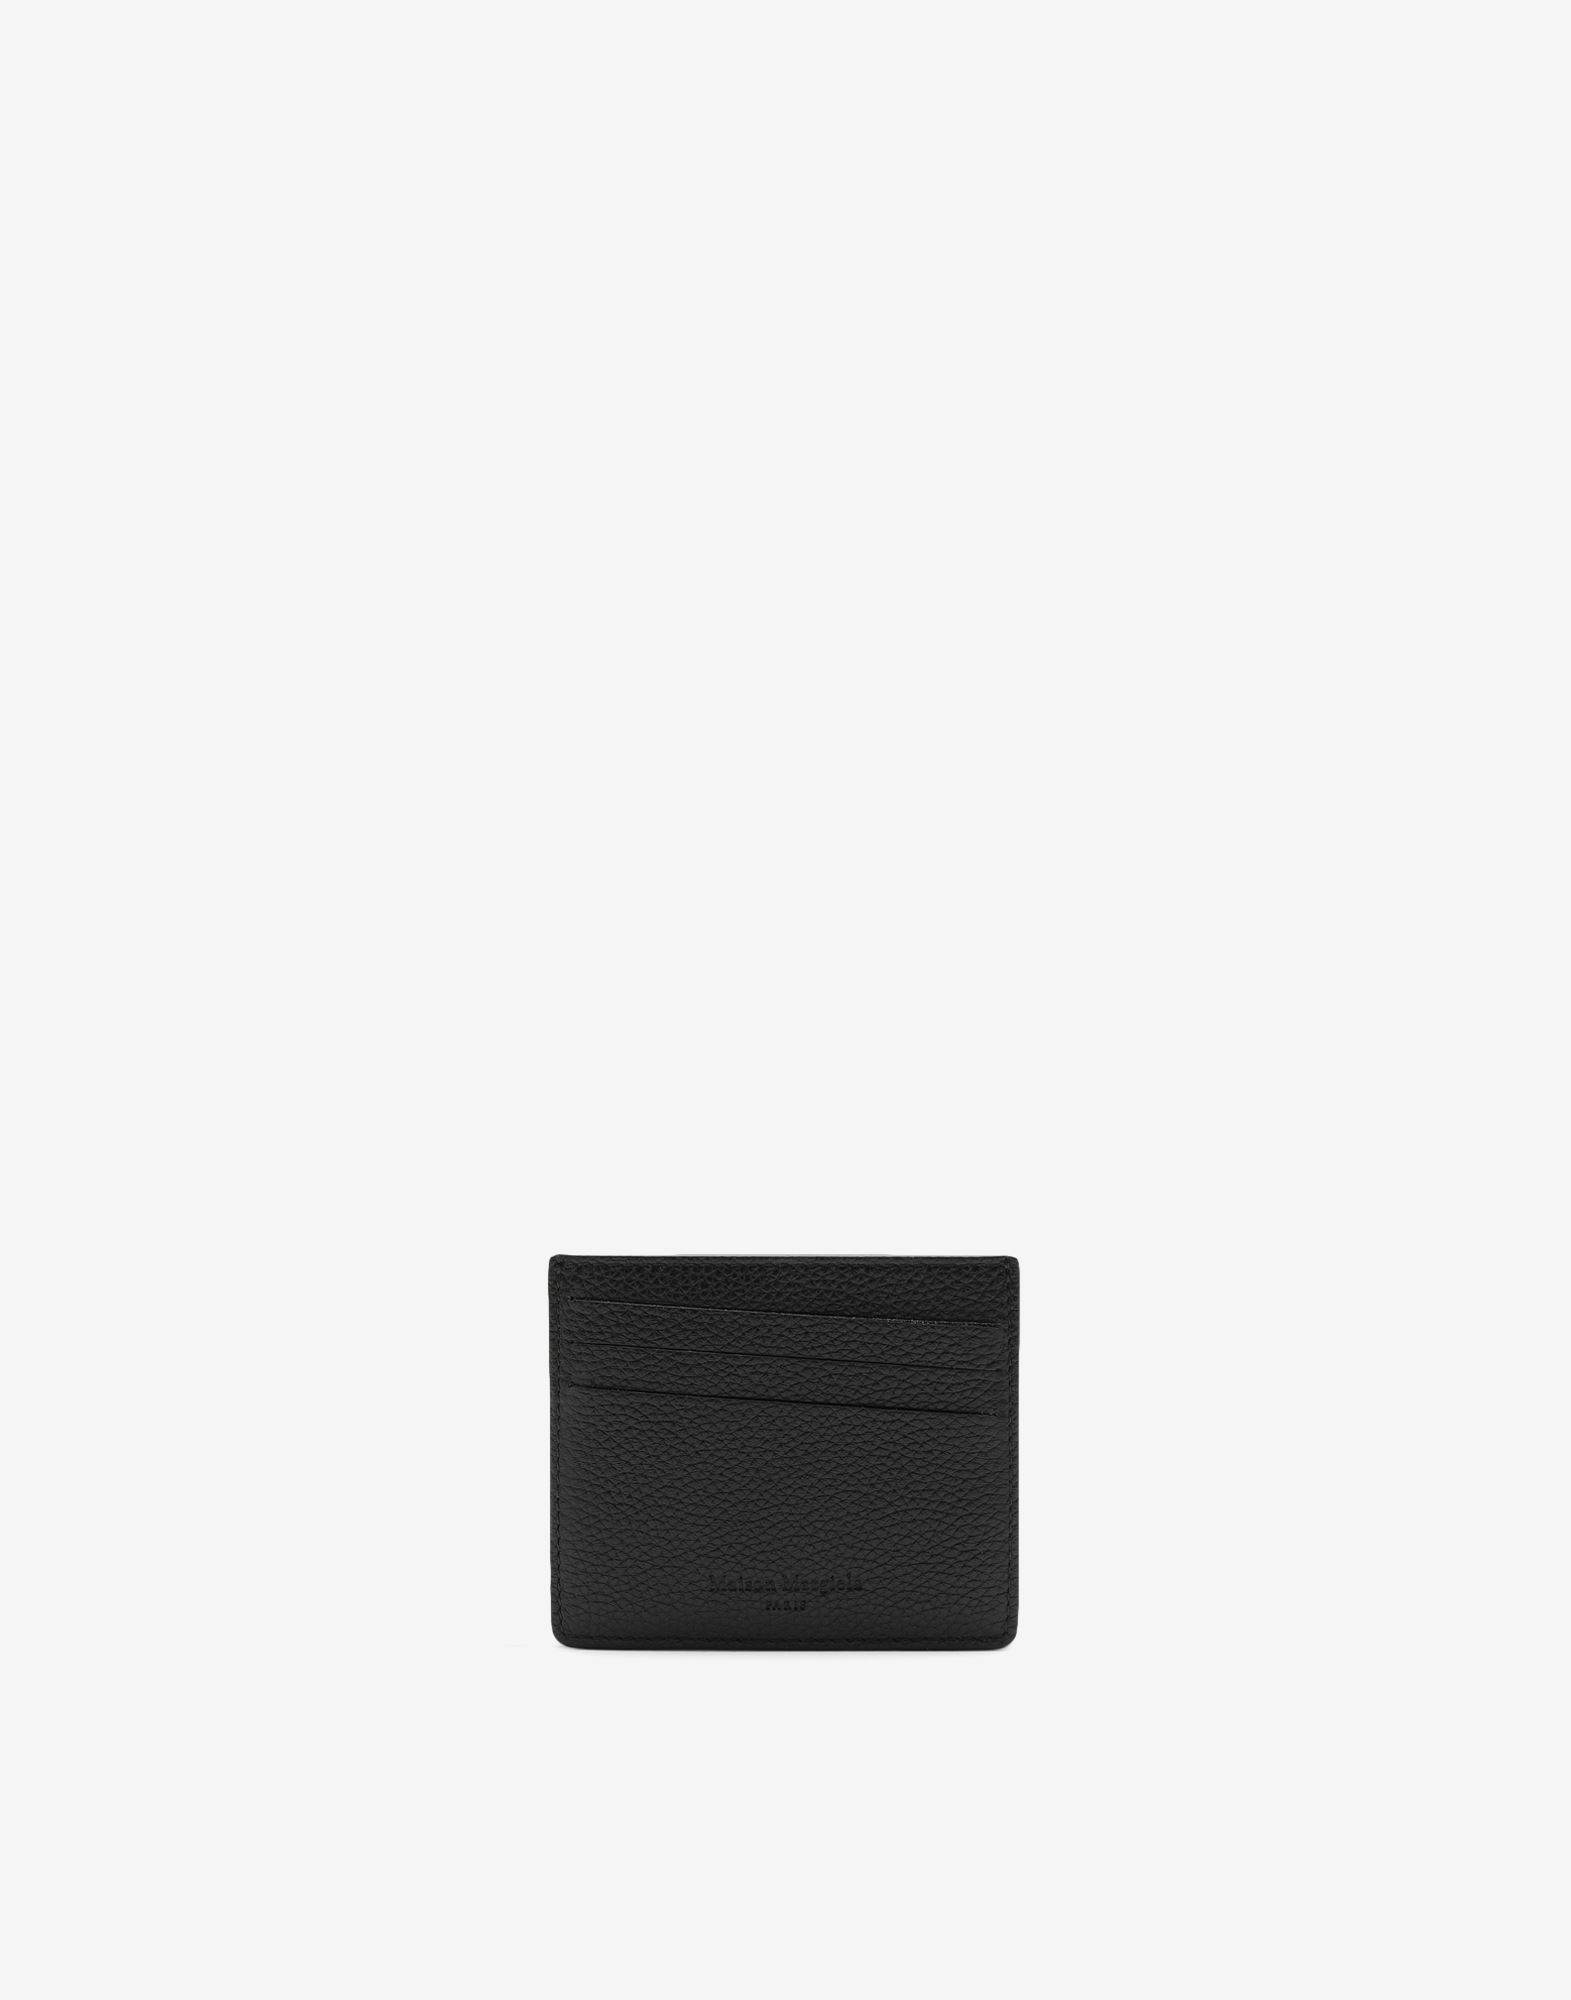 MAISON MARGIELA Leather card holder Wallets Man f